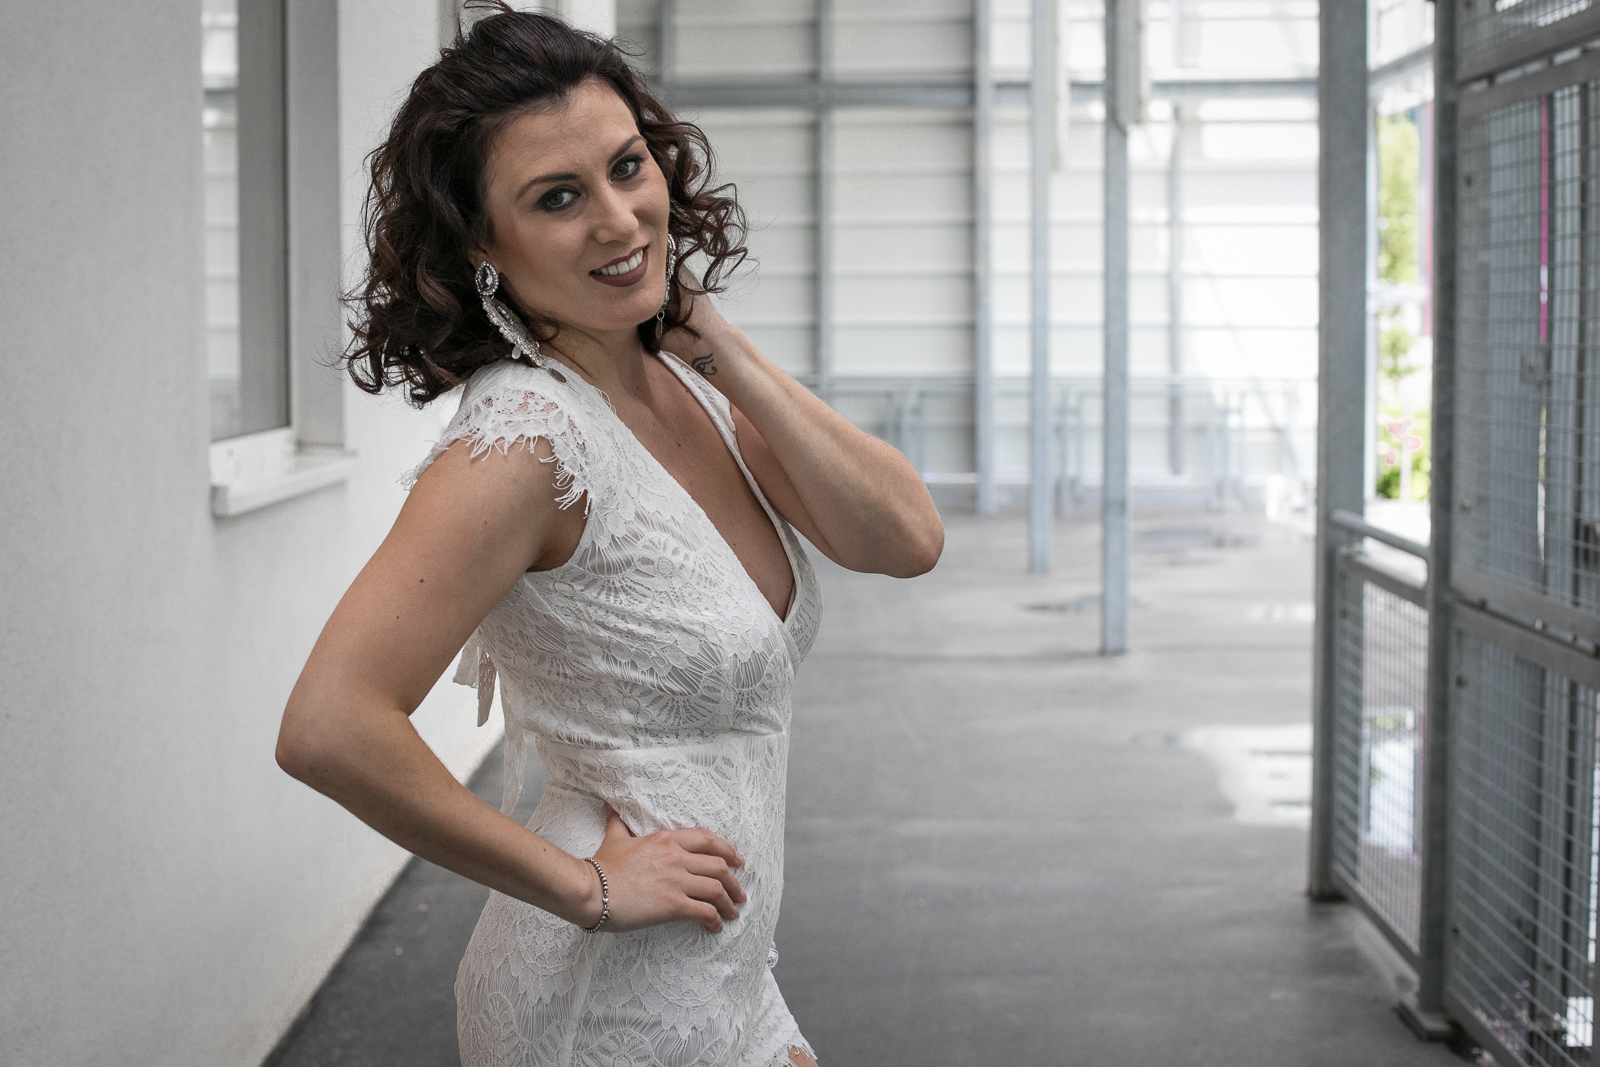 outfit_outfitpost_stradivarus_shooting_blog_wien_vienna_outfit_fotobyannaschuecker_anna_schuecker_annaschuecker_nadjanemetz_nadja_nemetz_violetfleur_violet_fleur_jumpsuit_white_lace_whitelace_summeroutfit_summer_party_partyoutfit_helenadia_helena_dia_2